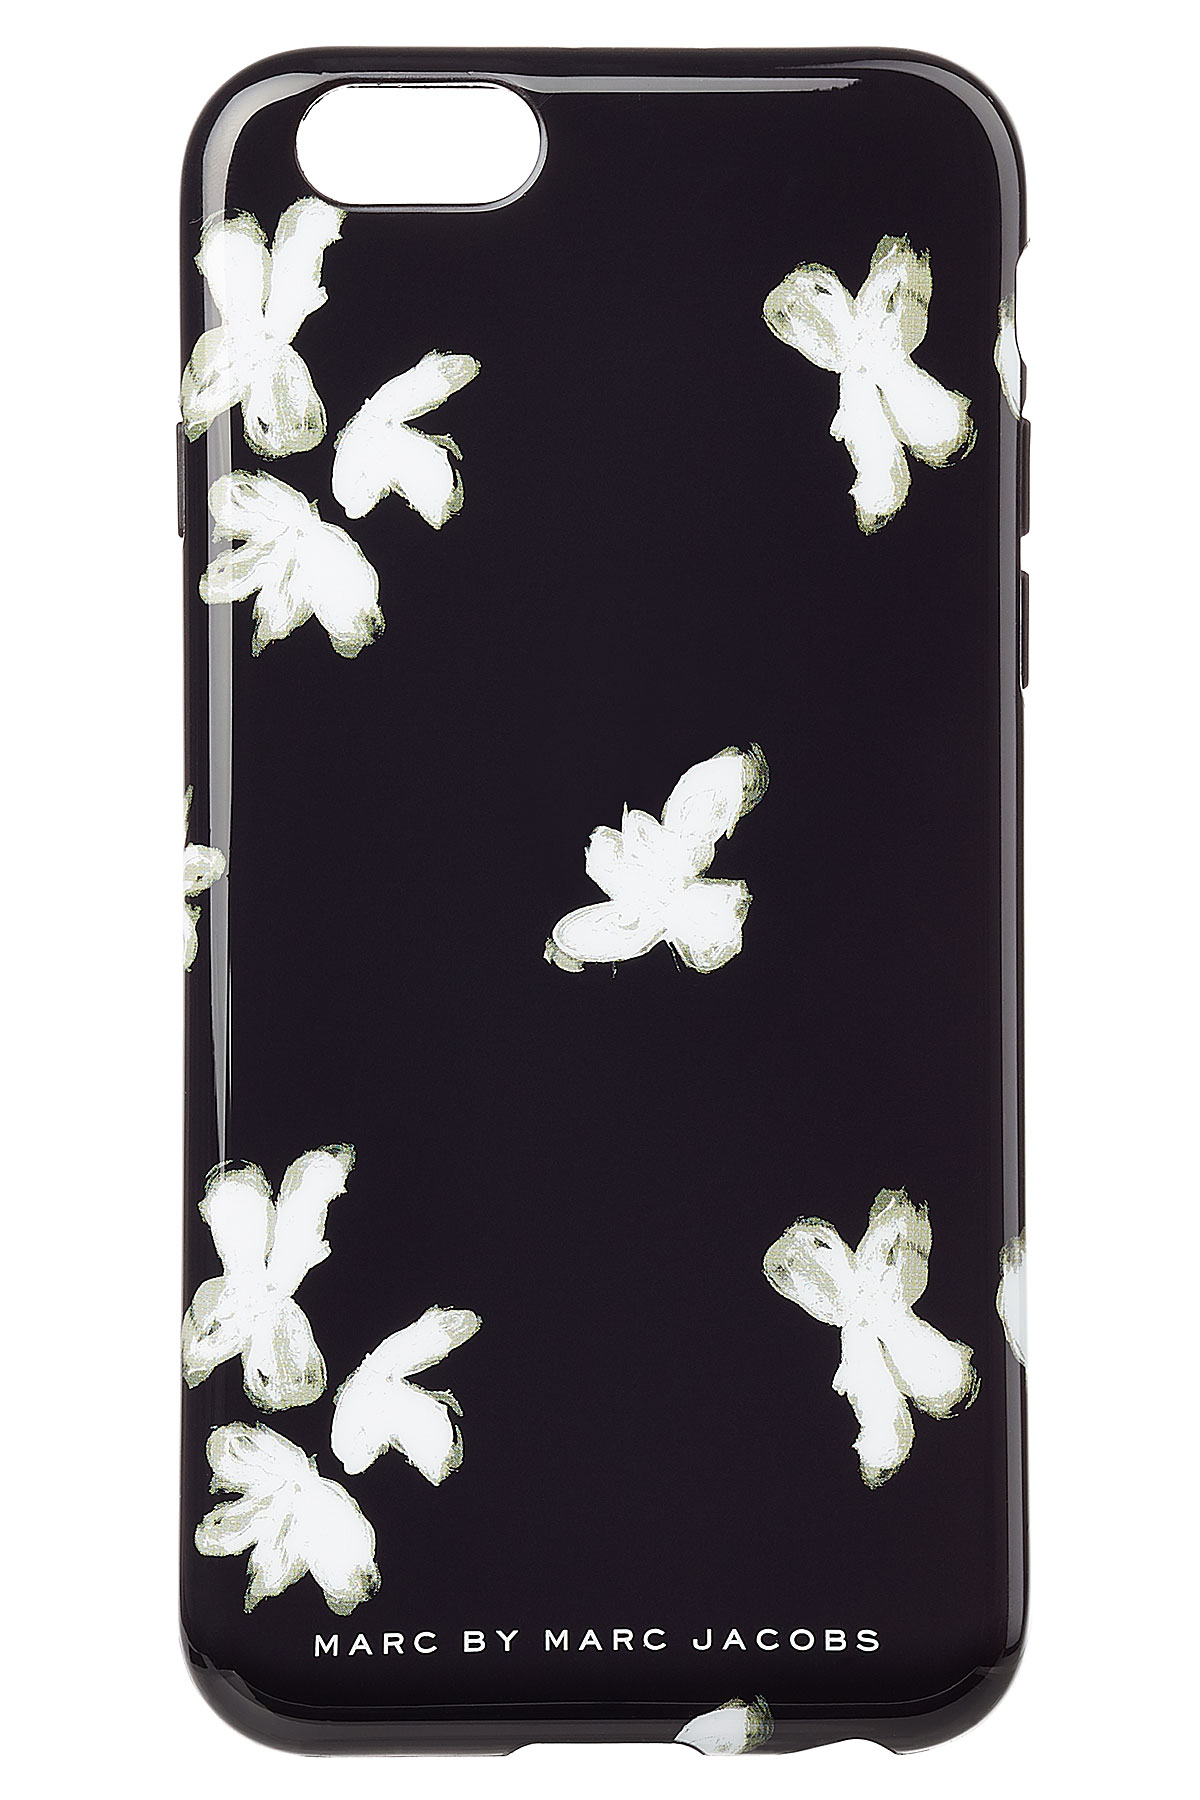 marc by marc jacobs printed iphone 6 case product 0 633027318 normal